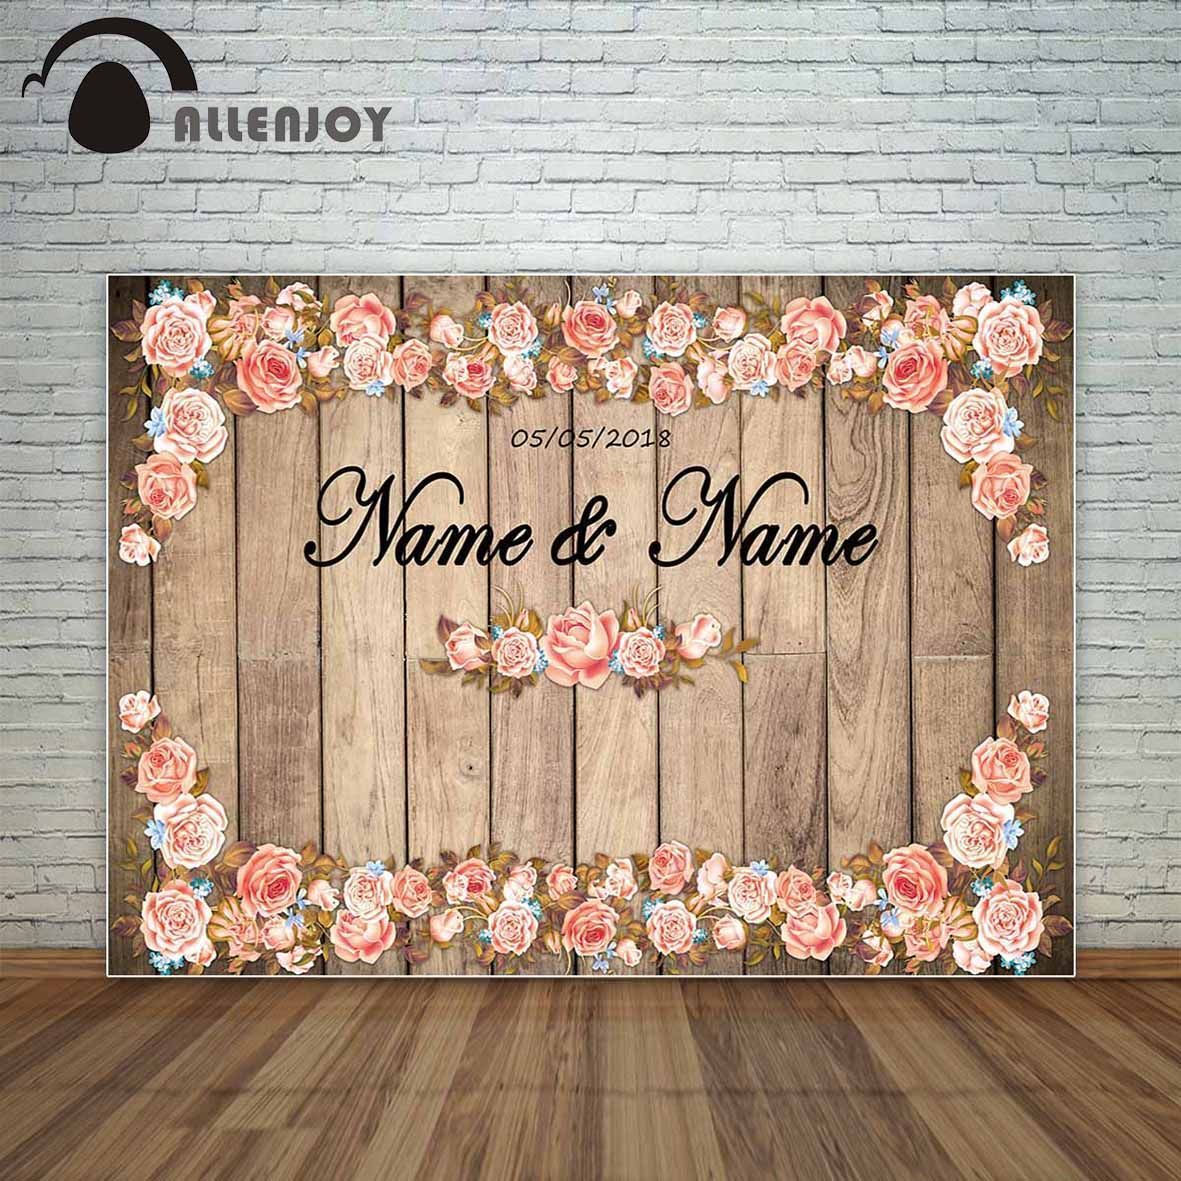 Allenjoy Photography Backdrop Vintage Wedding Wood Flowers Romantic Lovers Backdrop Background For Pho Backdrops Backgrounds Photography Backdrops Wood Flowers